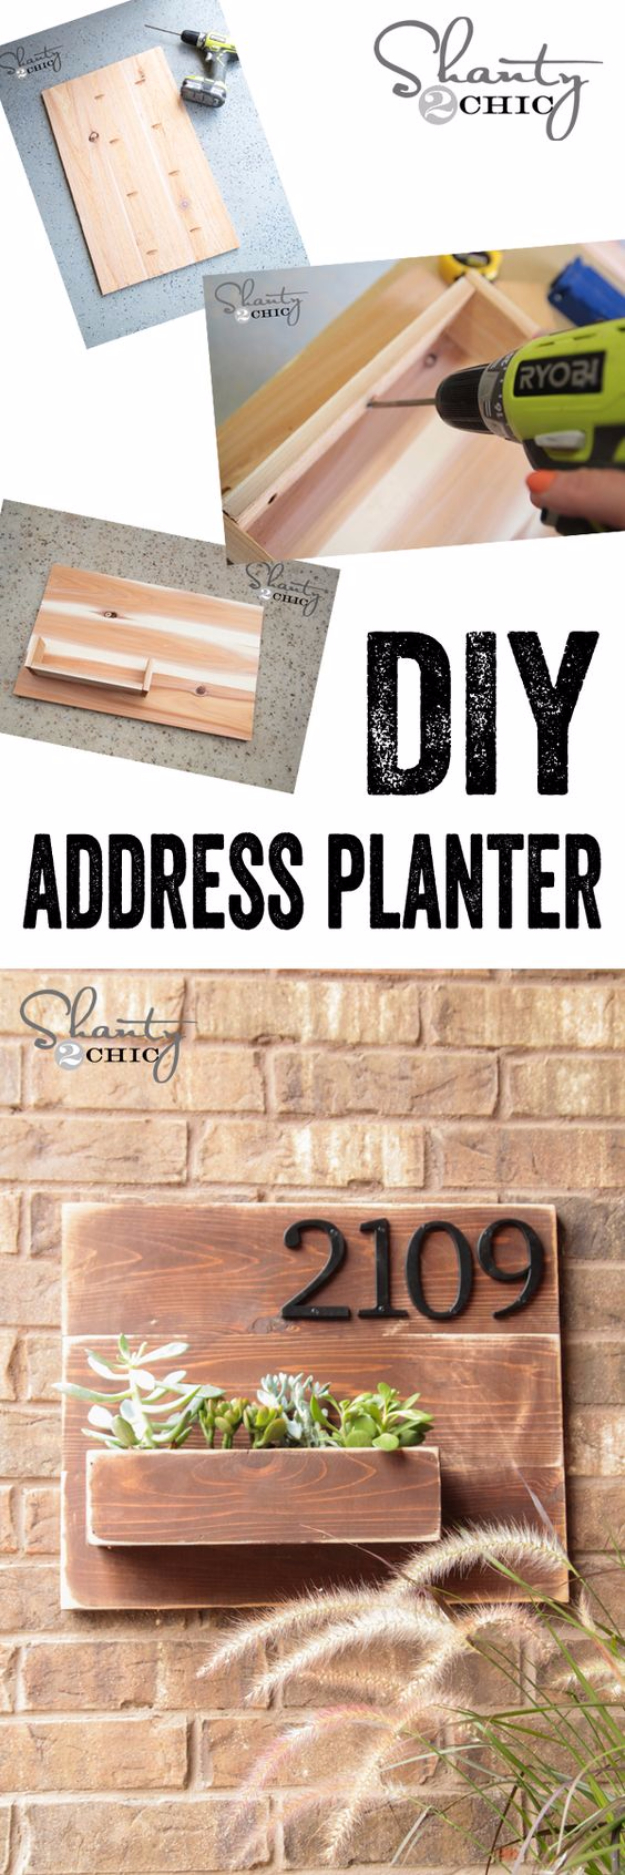 Creative Ways to Increase Curb Appeal on A Budget - DIY Address Number Wall Planter - Cheap and Easy Ideas for Upgrading Your Front Porch, Landscaping, Driveways, Garage Doors, Brick and Home Exteriors. Add Window Boxes, House Numbers